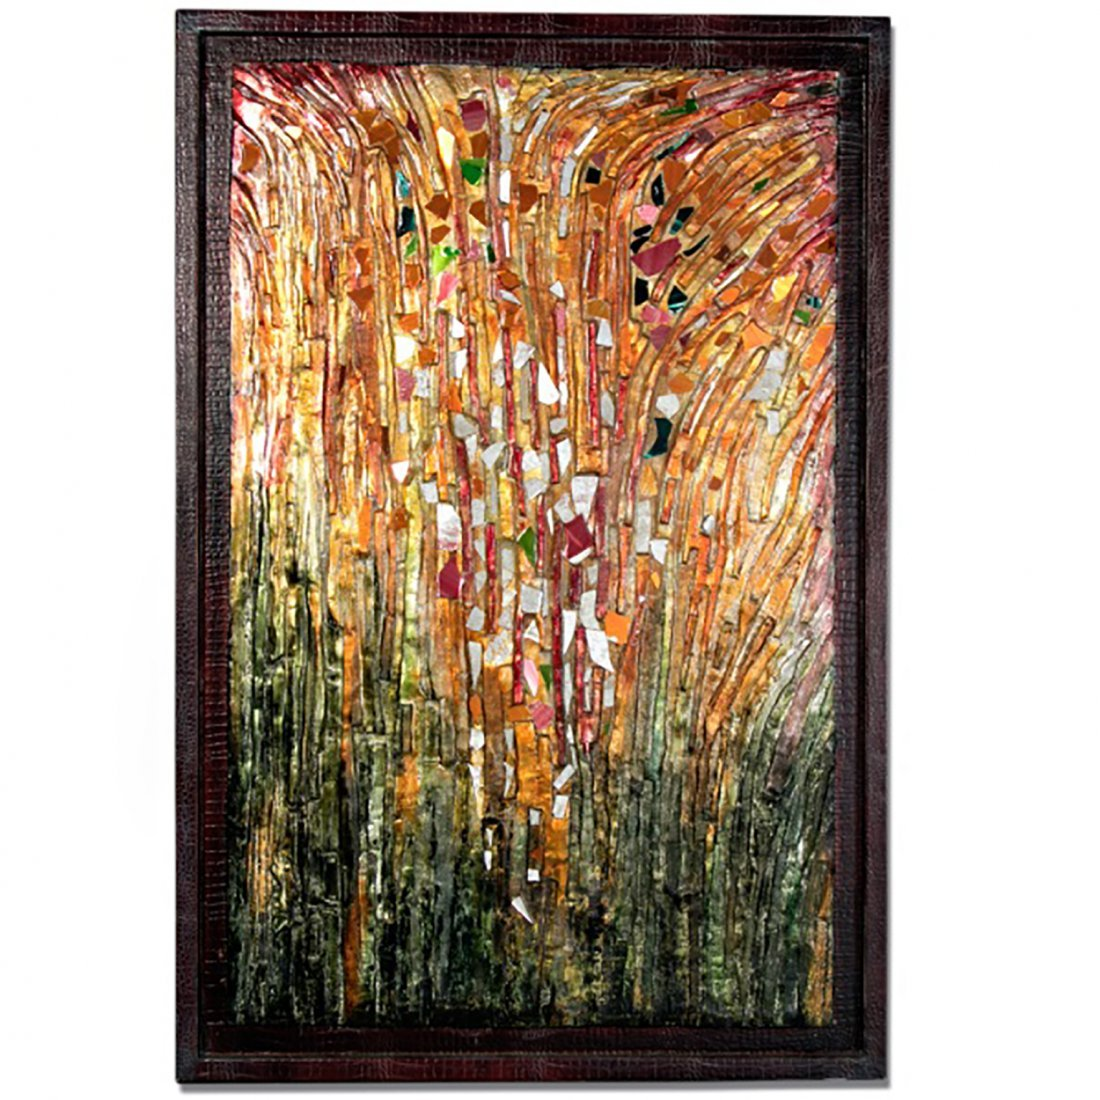 Huge Mosaic Stained Glass Modern Wall Mounted Art Work